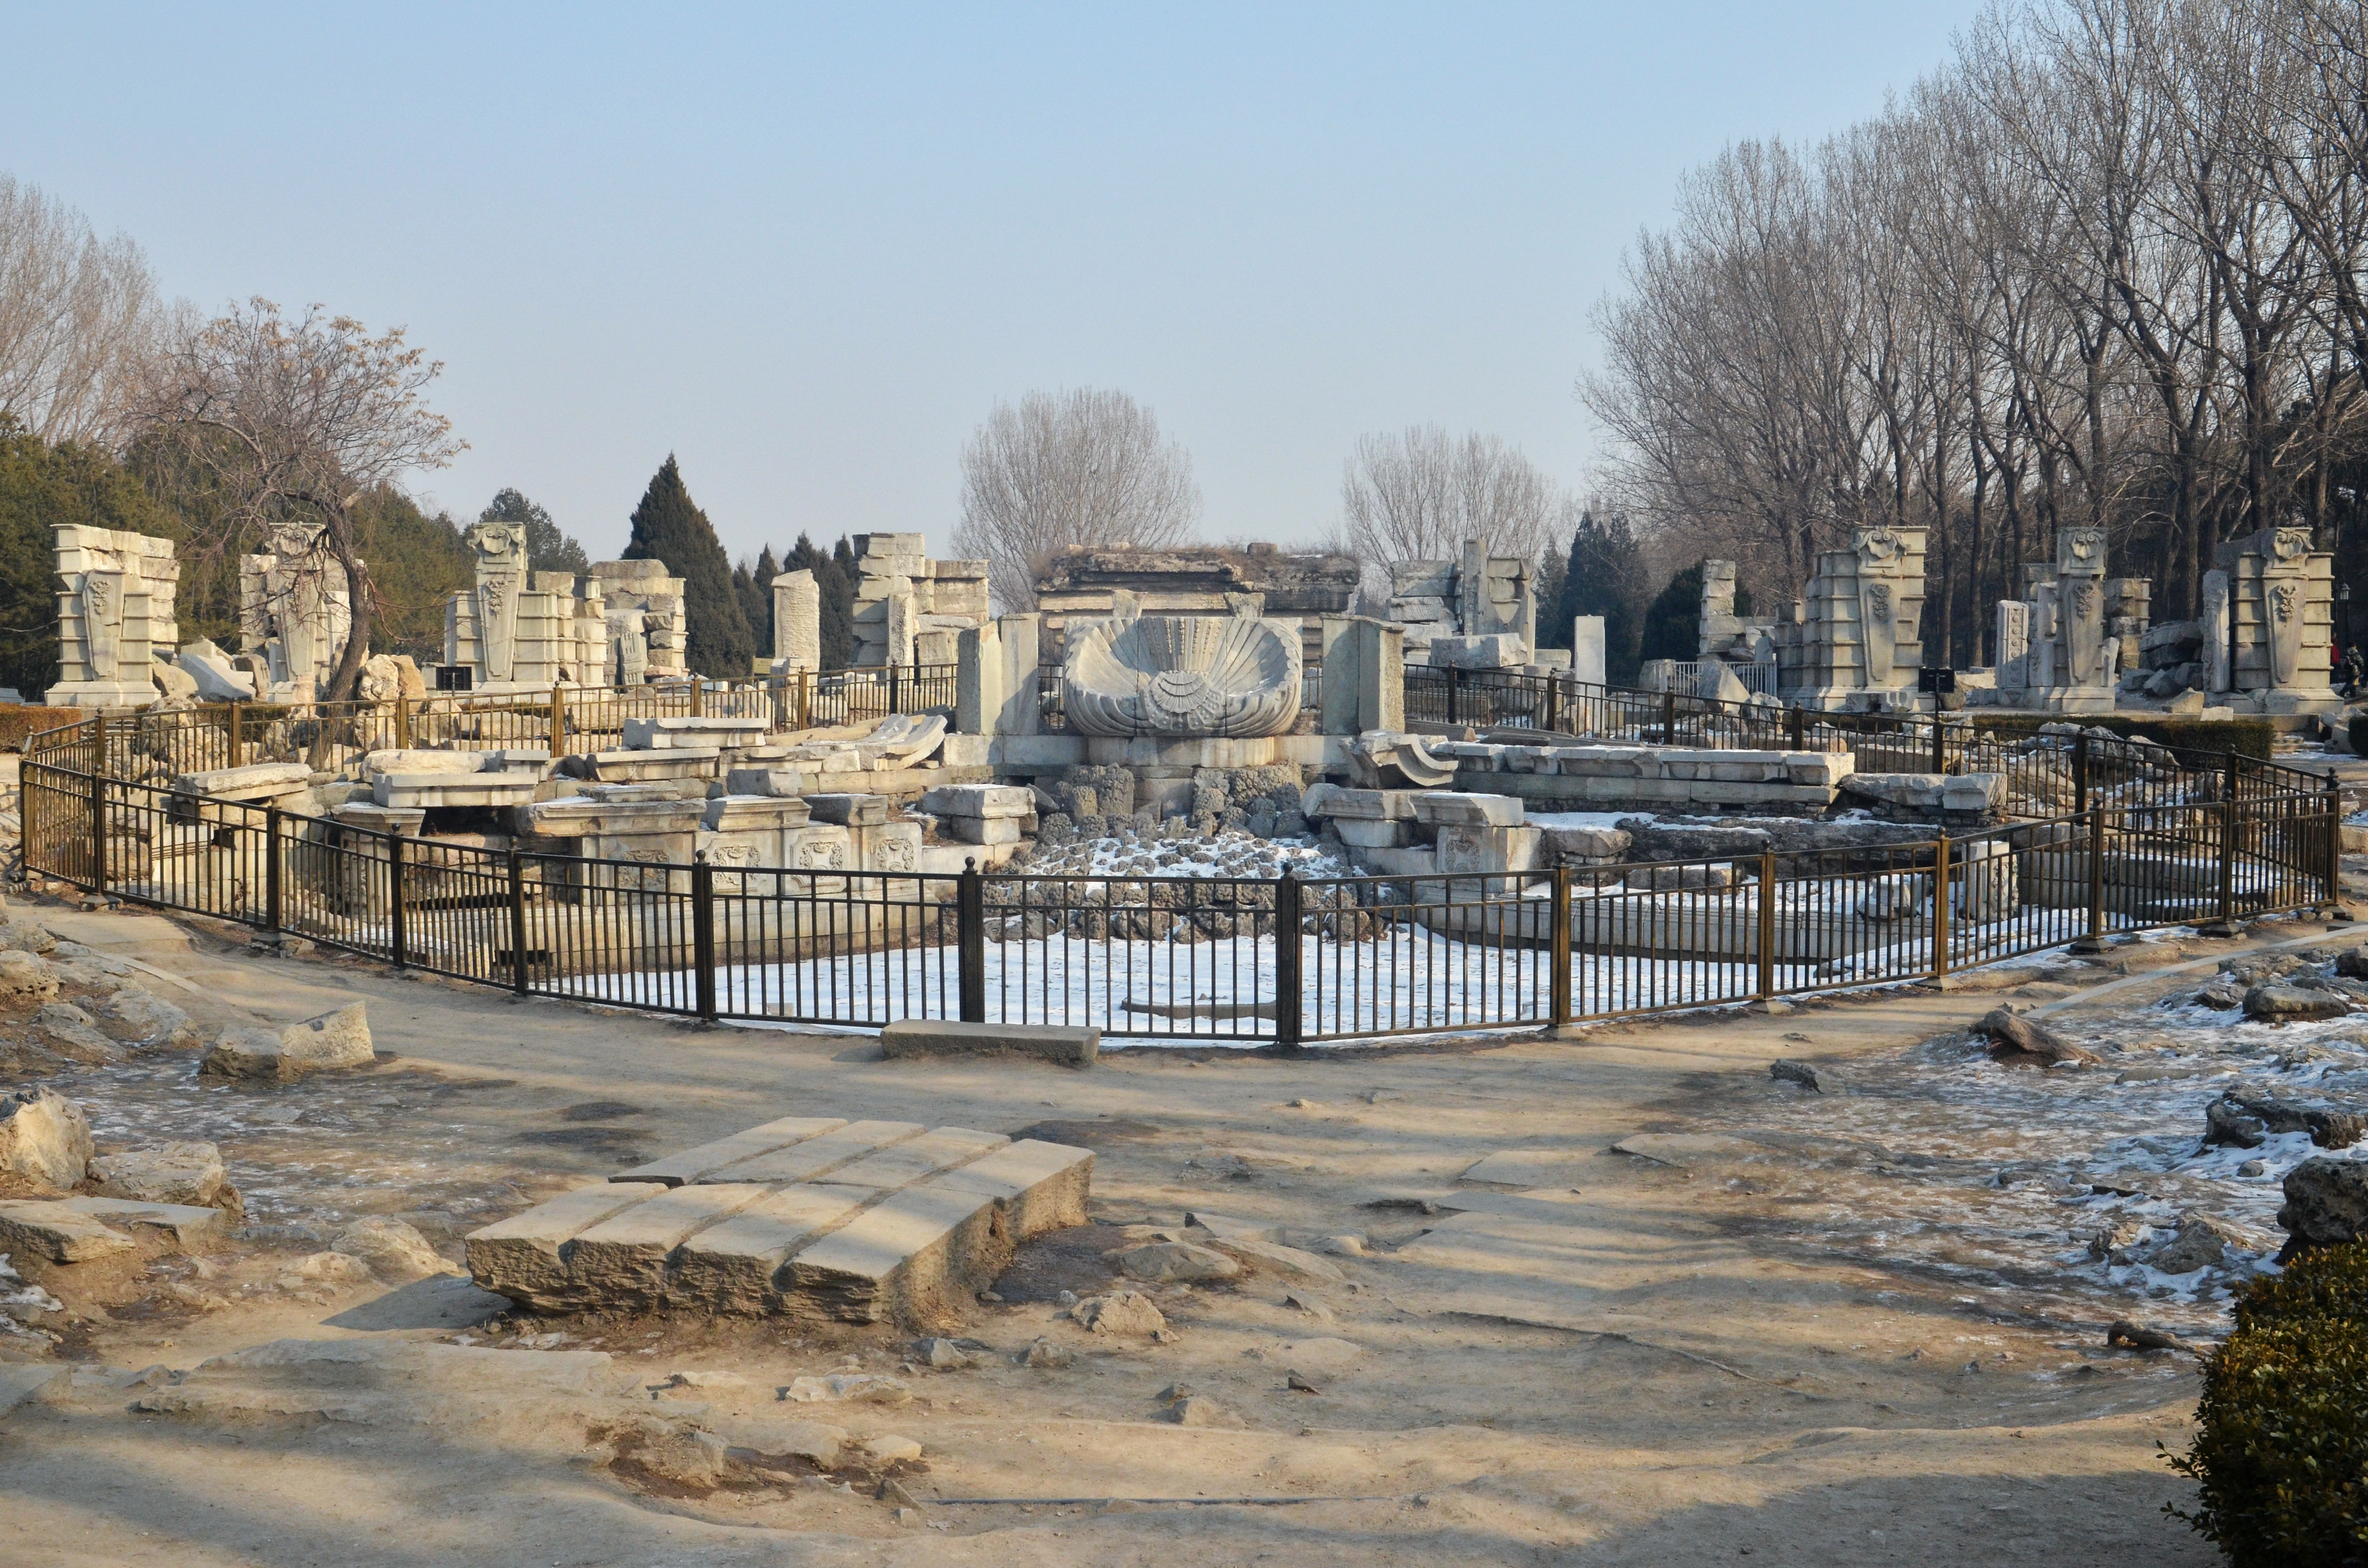 http://www.thehistoryblog.com/wp-content/uploads/2013/04/Ruins-of-Haiyantang-today.jpg